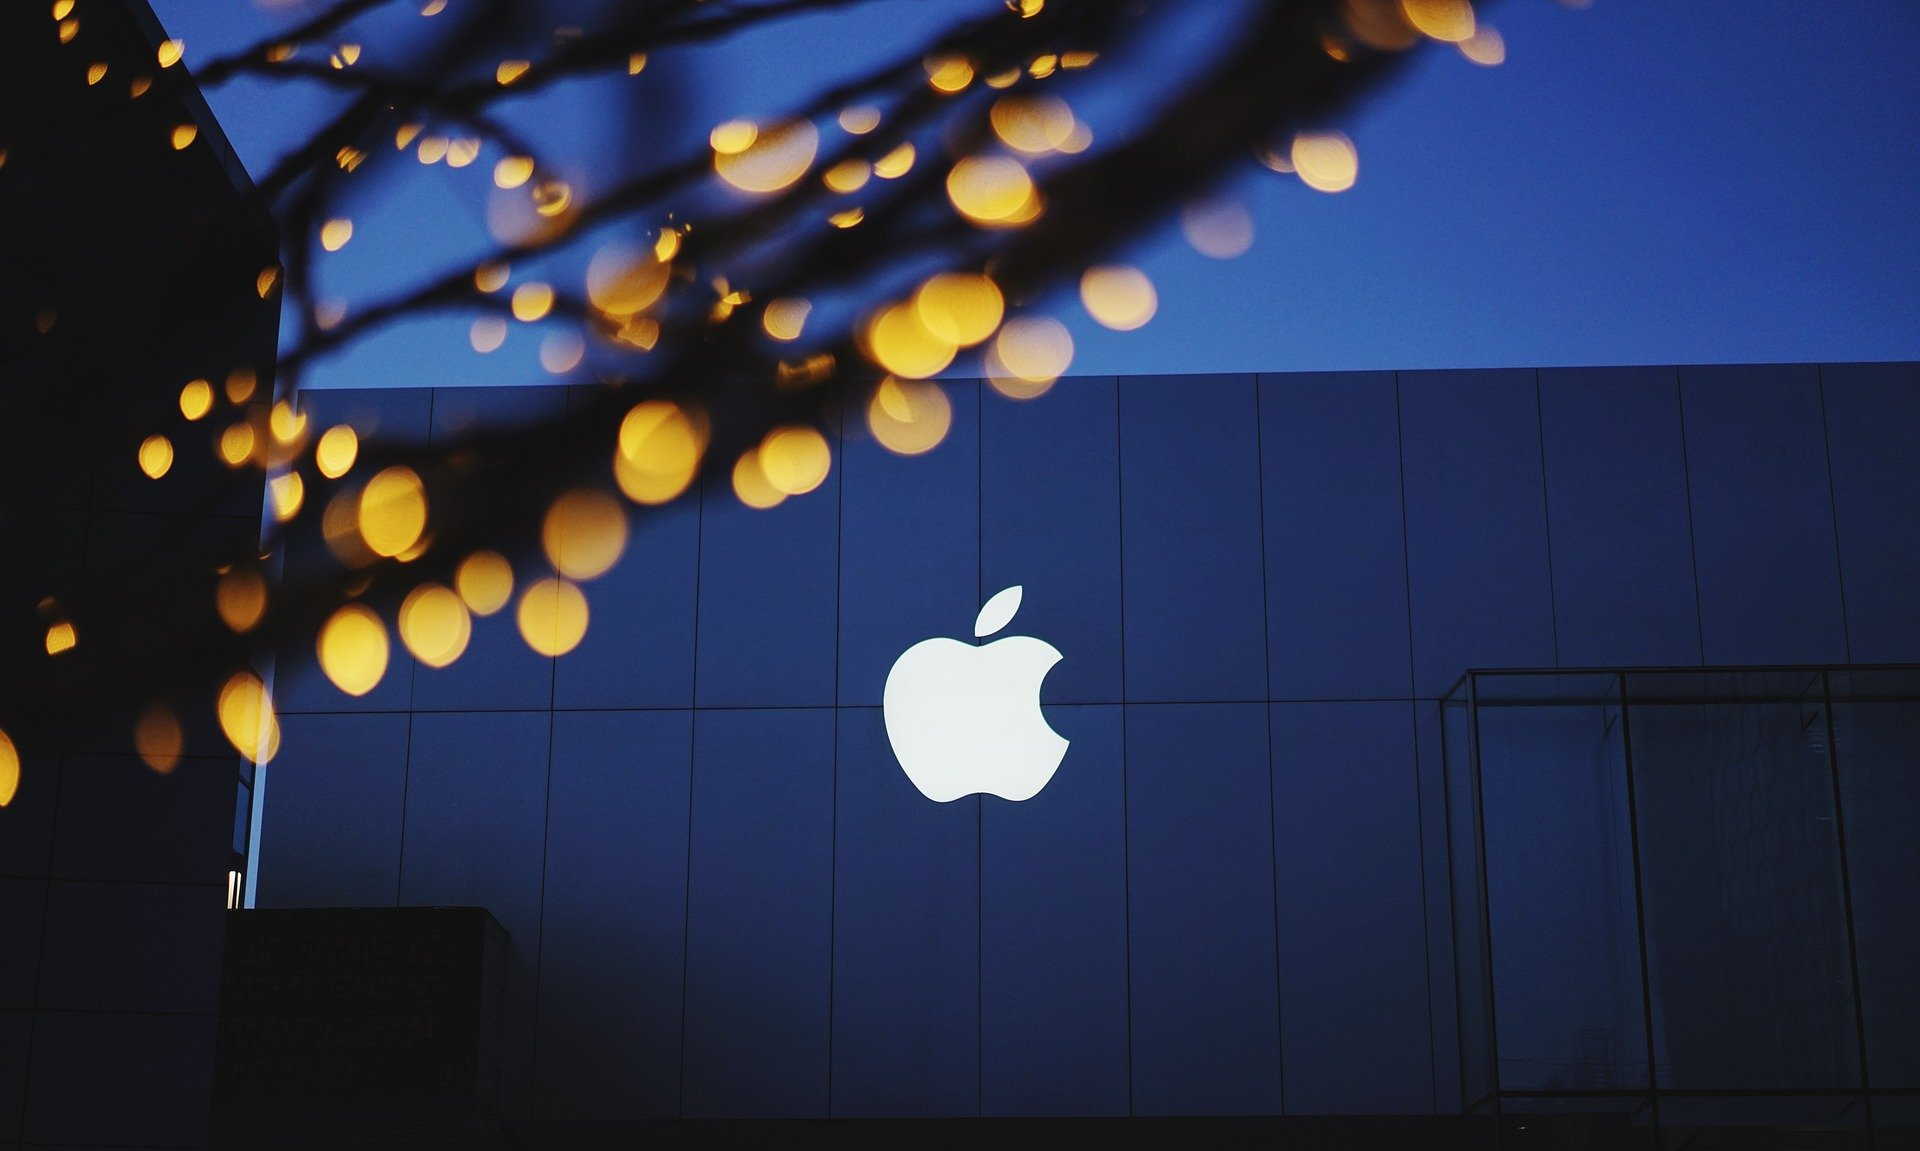 Apple Announcement to take place in Brooklyn today - EMEA Brief 30 Oct